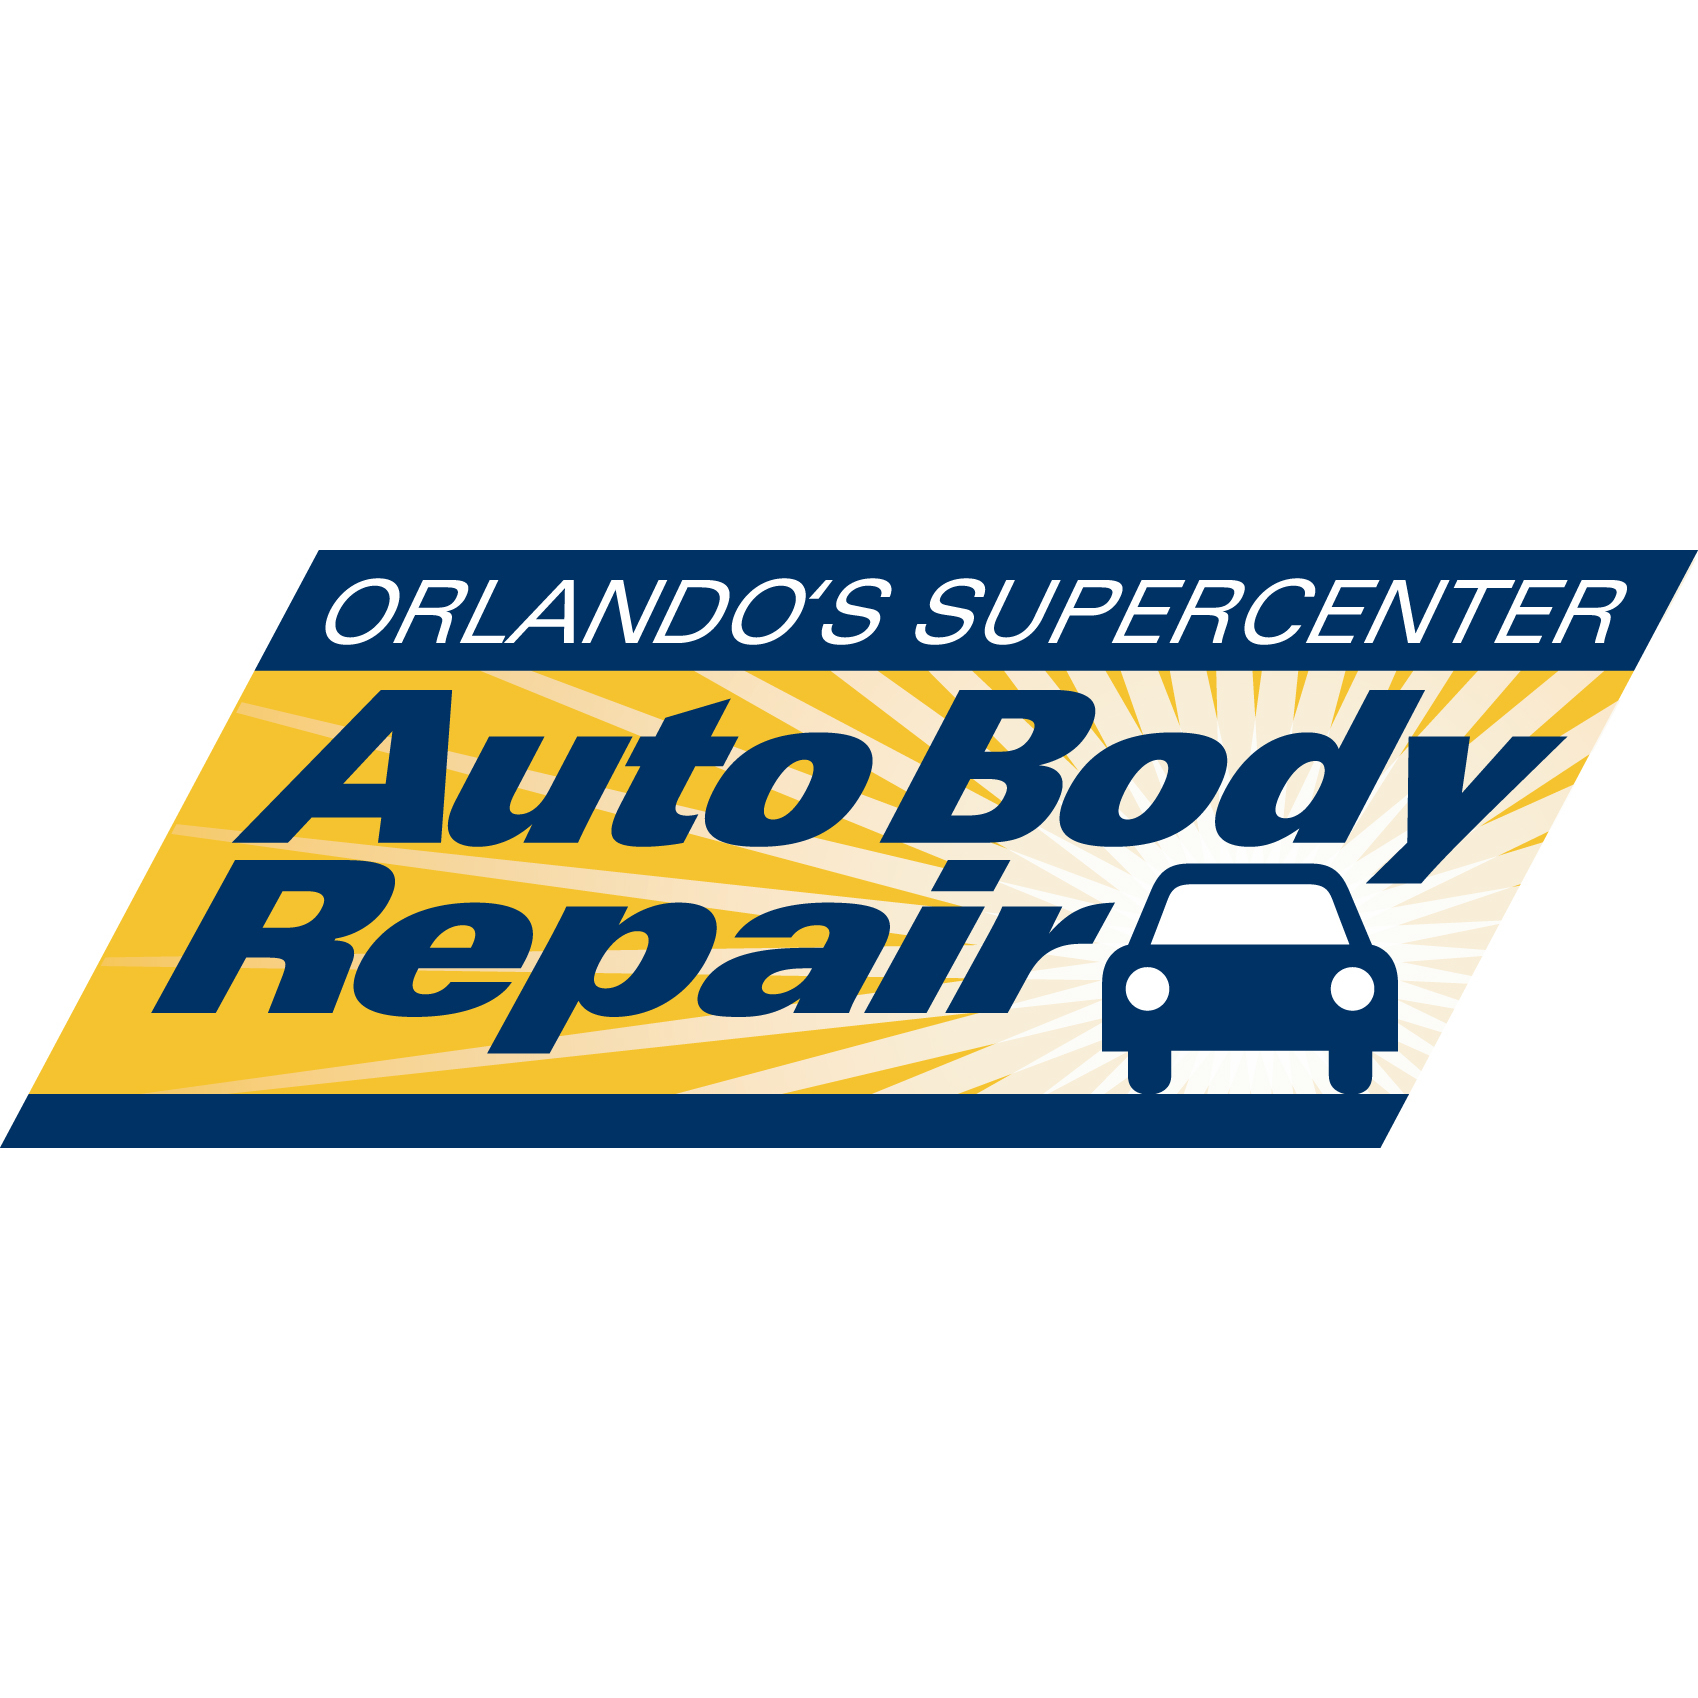 Orlando's Super Center Auto Body Repair